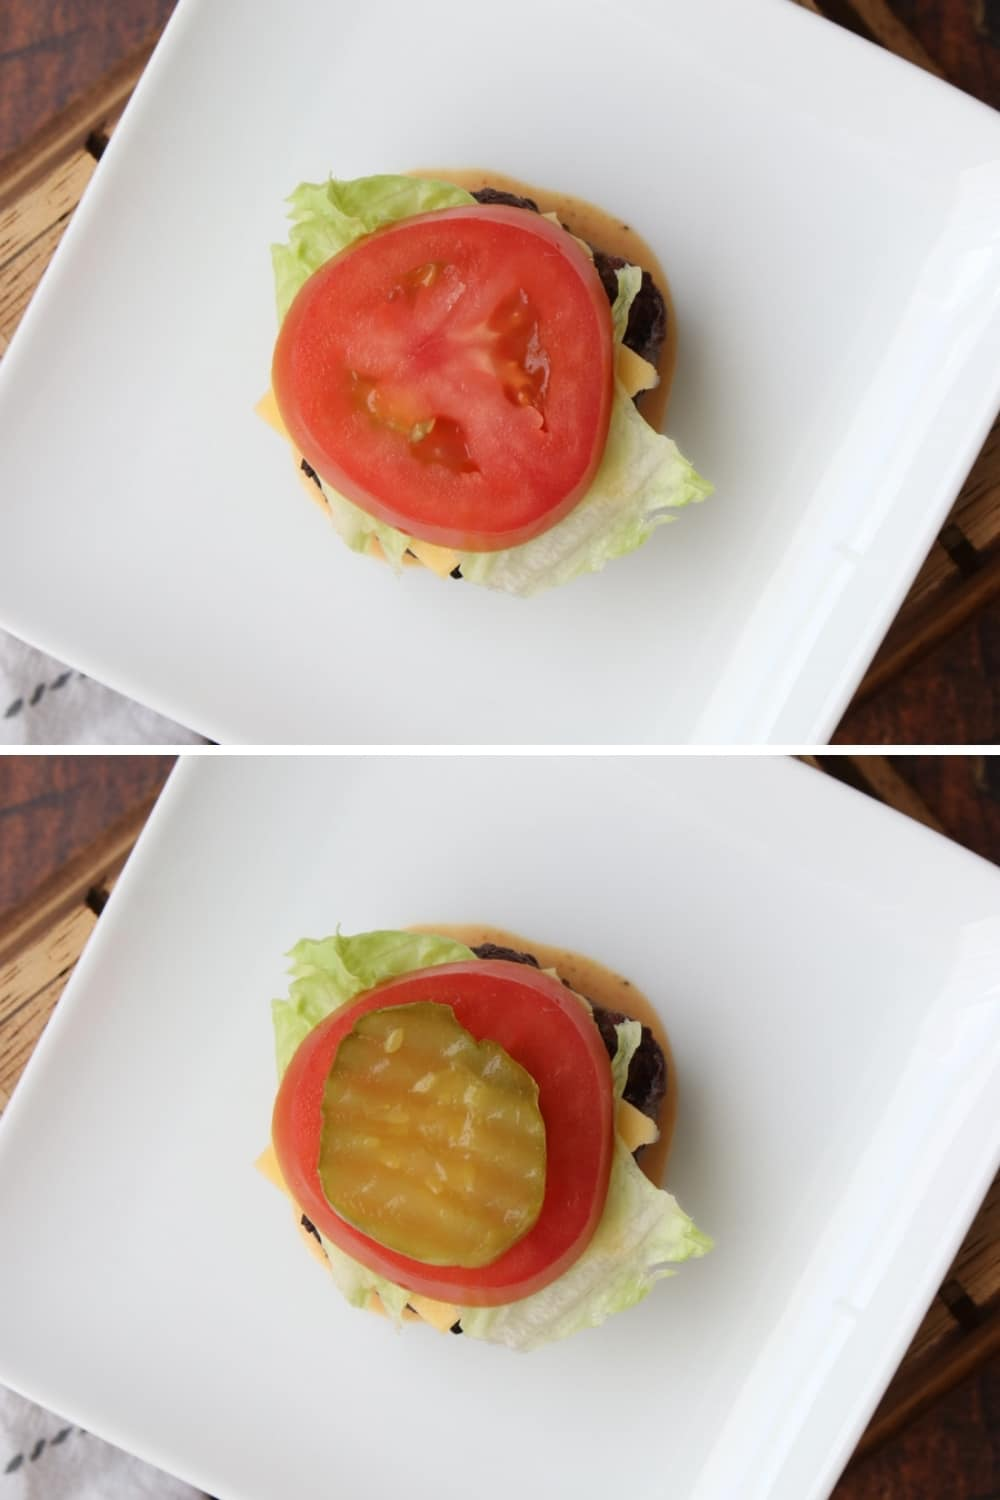 Two photos showing how to assemble sliders